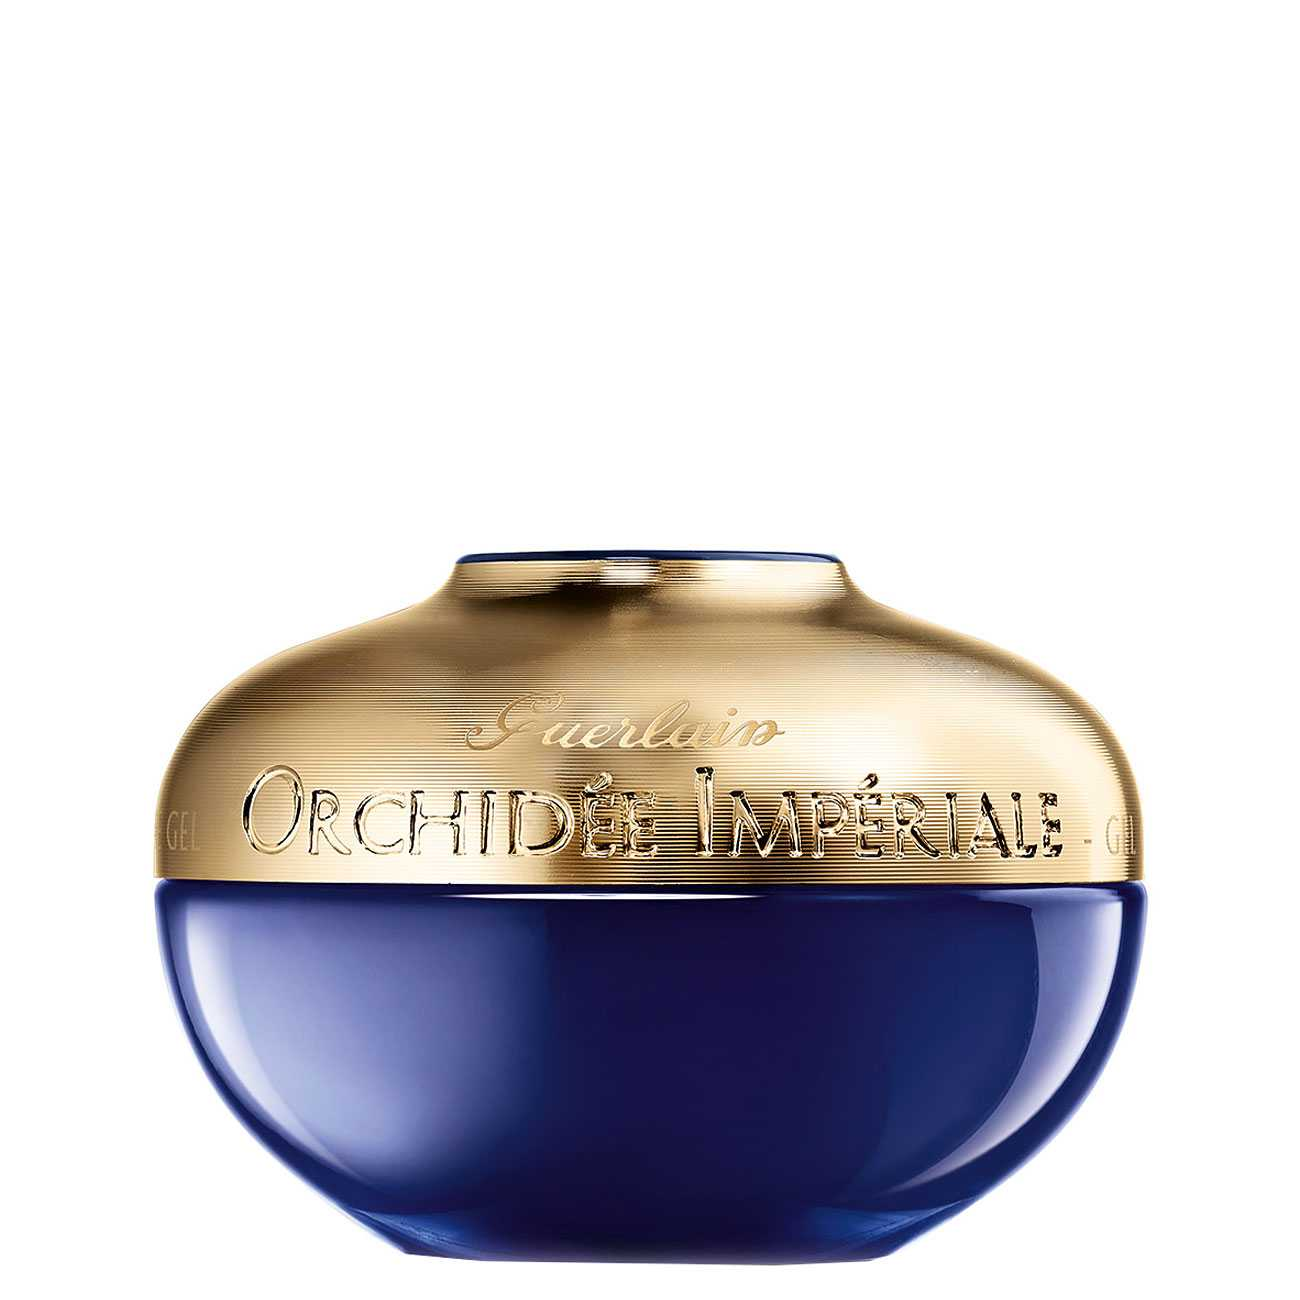 ORCHIDEE IMPERIALE GEL CREAM 50 ML imagine produs